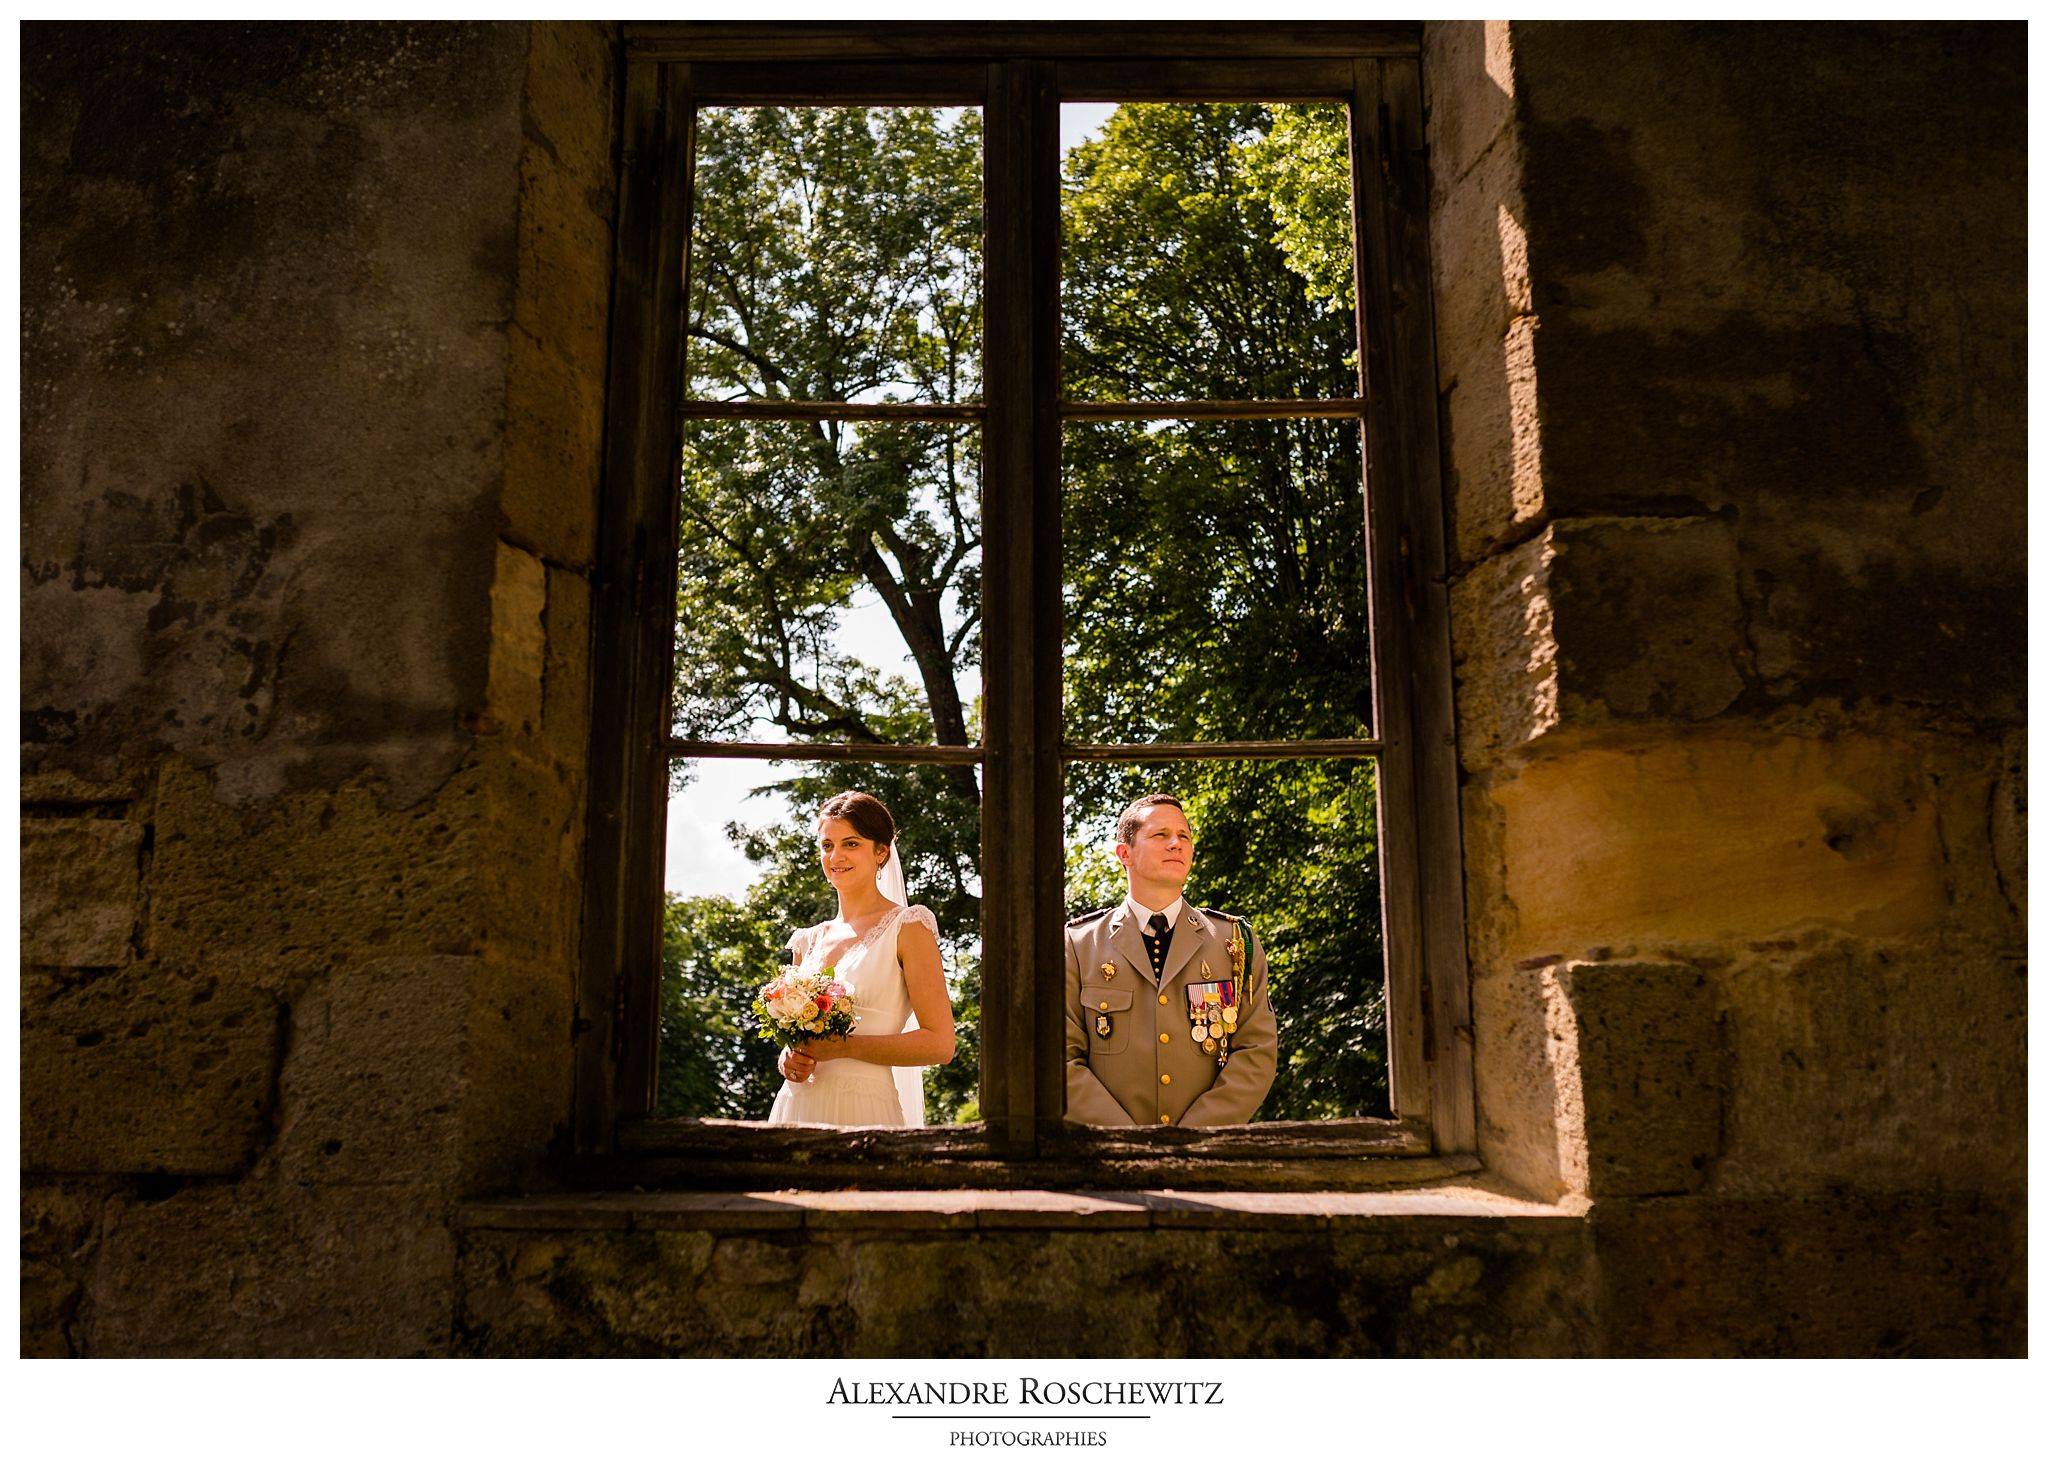 mariage-bourg-gironde-chateau-citadelle-religieux-militaire-clemence-luc-alexandre-roschewitz-photographies_1572_2048px